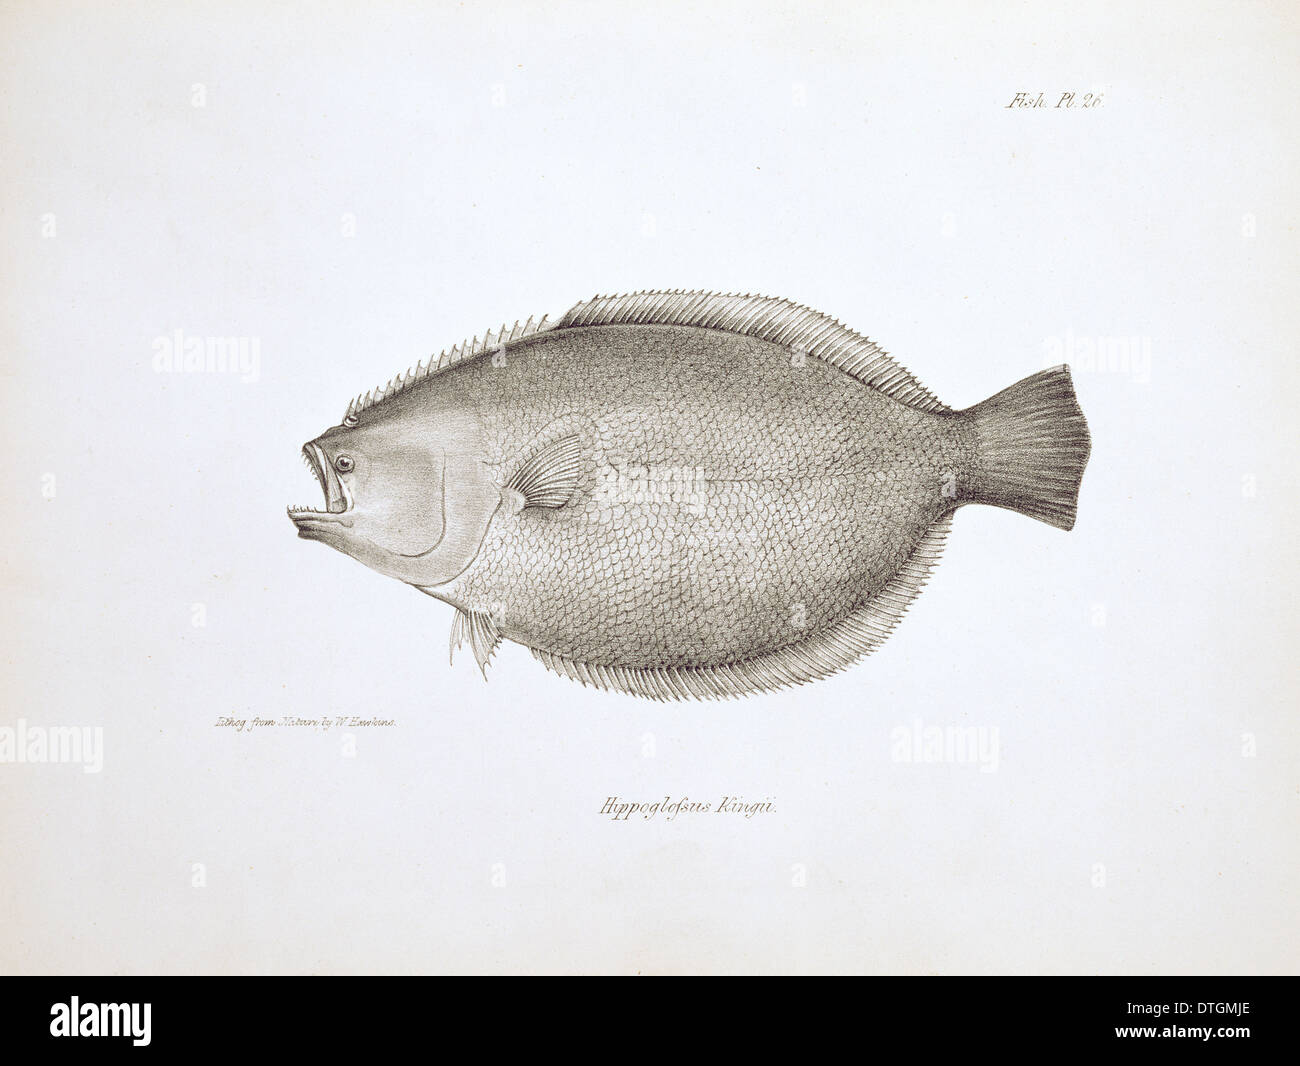 Paralichthys adspersus, fine flounder - Stock Image